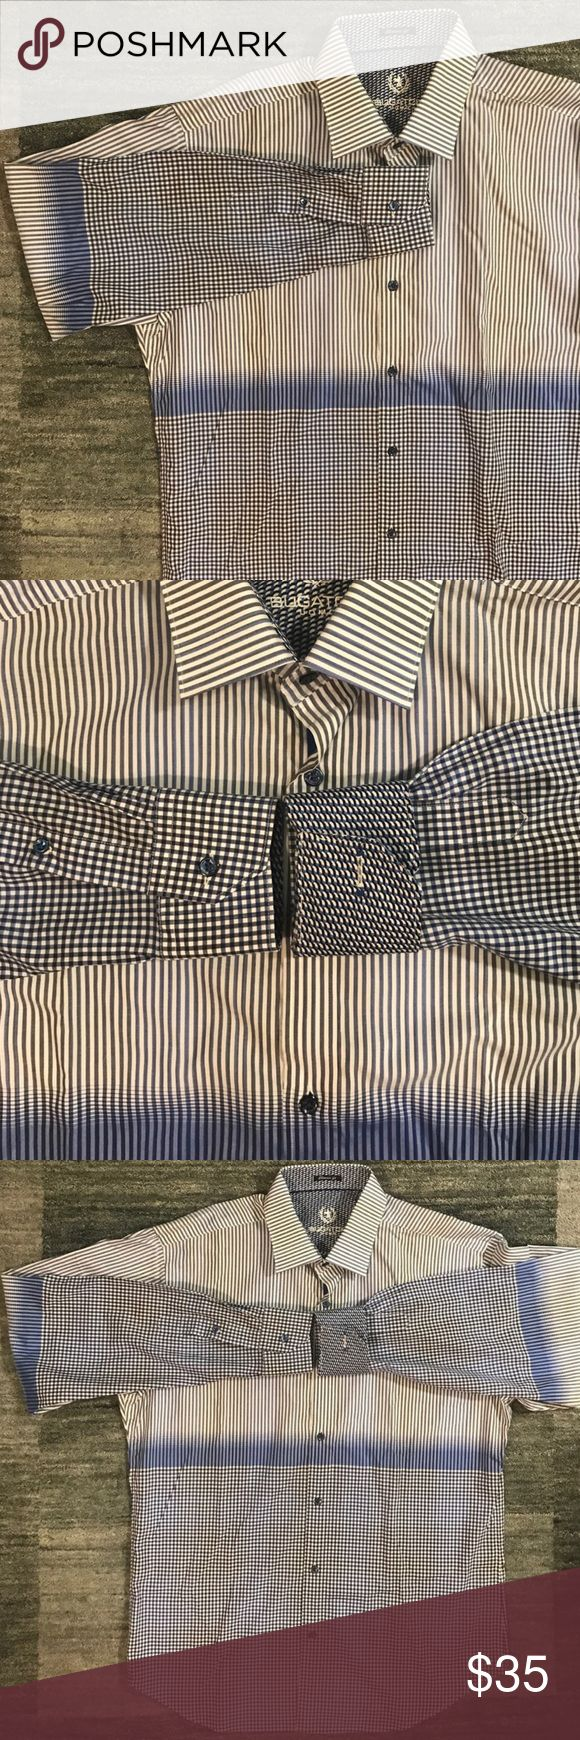 Mens Bugatchi Blue Two Toned Button Down Shirt Never worn Men's Button Down with detailed two toned pattern. The shirt fades from light blue to dark blue. Very stylish shirt that retails for over $150.                                        No Trades ❌ Posh Transactions Only ✔️ Bundles Welcome!✔️ All Items Come From a Smoke Free House 🚫🚬 Bugatchi Shirts Casual Button Down Shirts